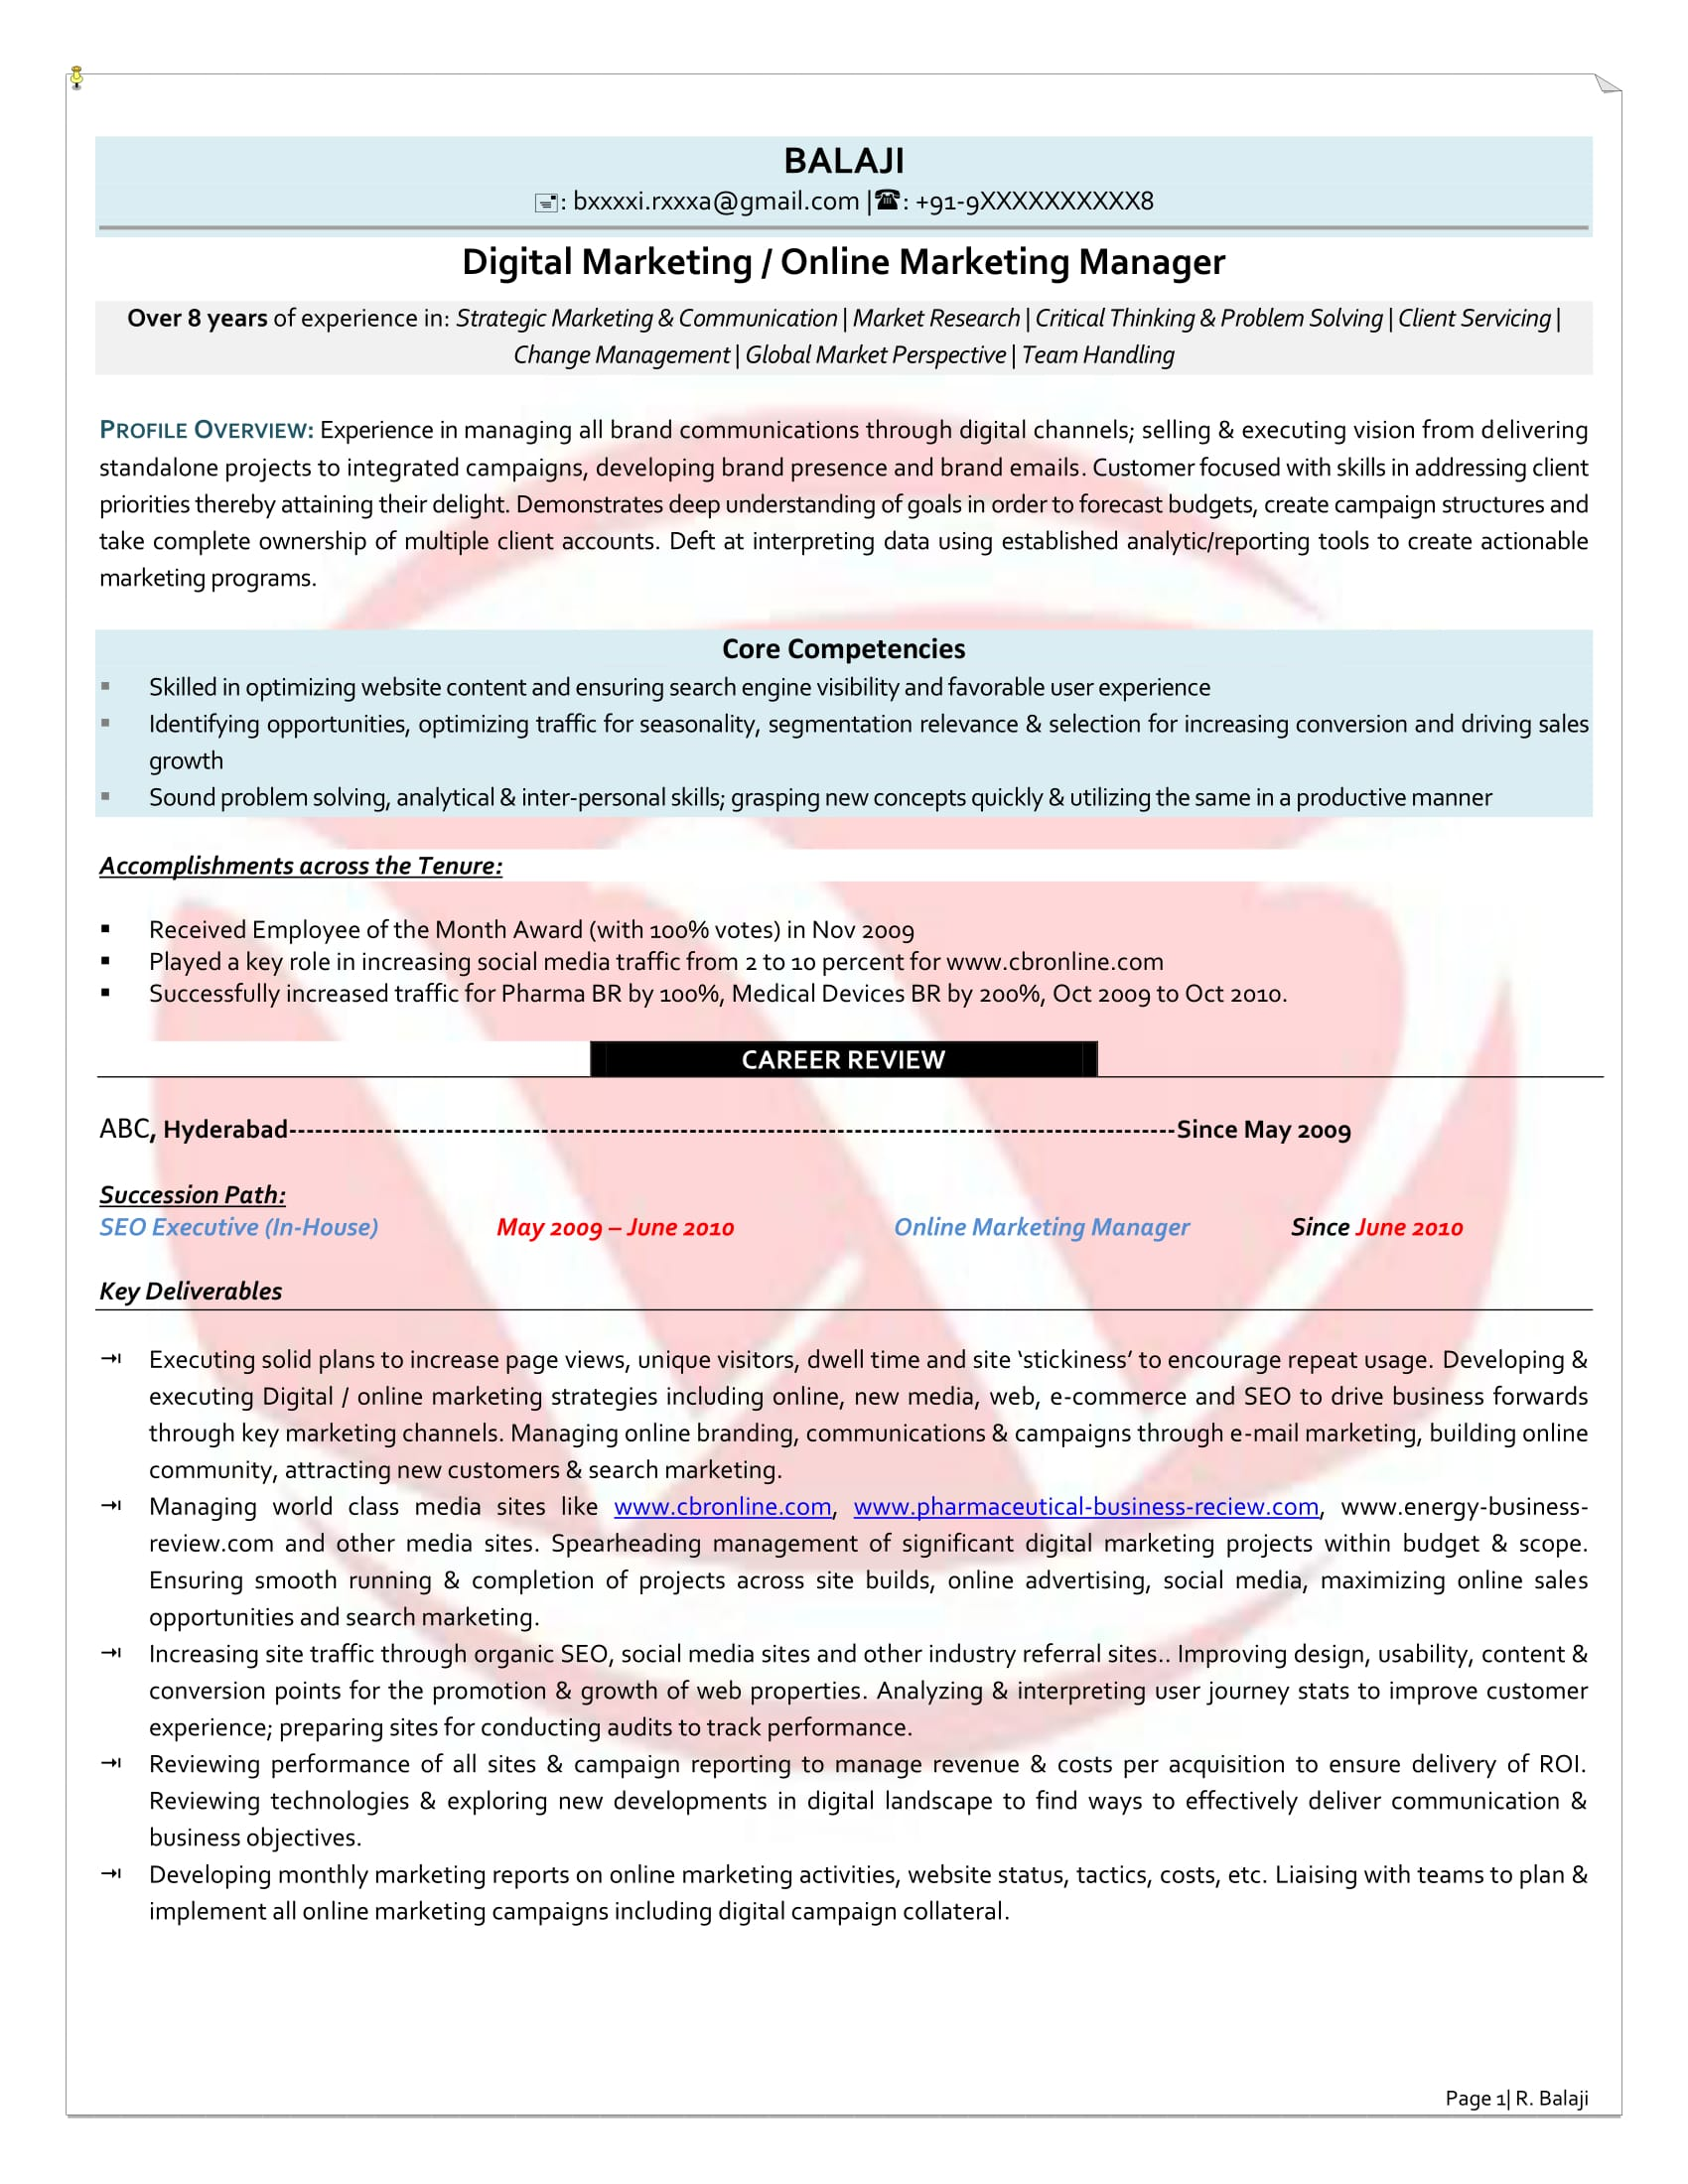 Digital Marketing Sample Resume  Marketing Sample Resume